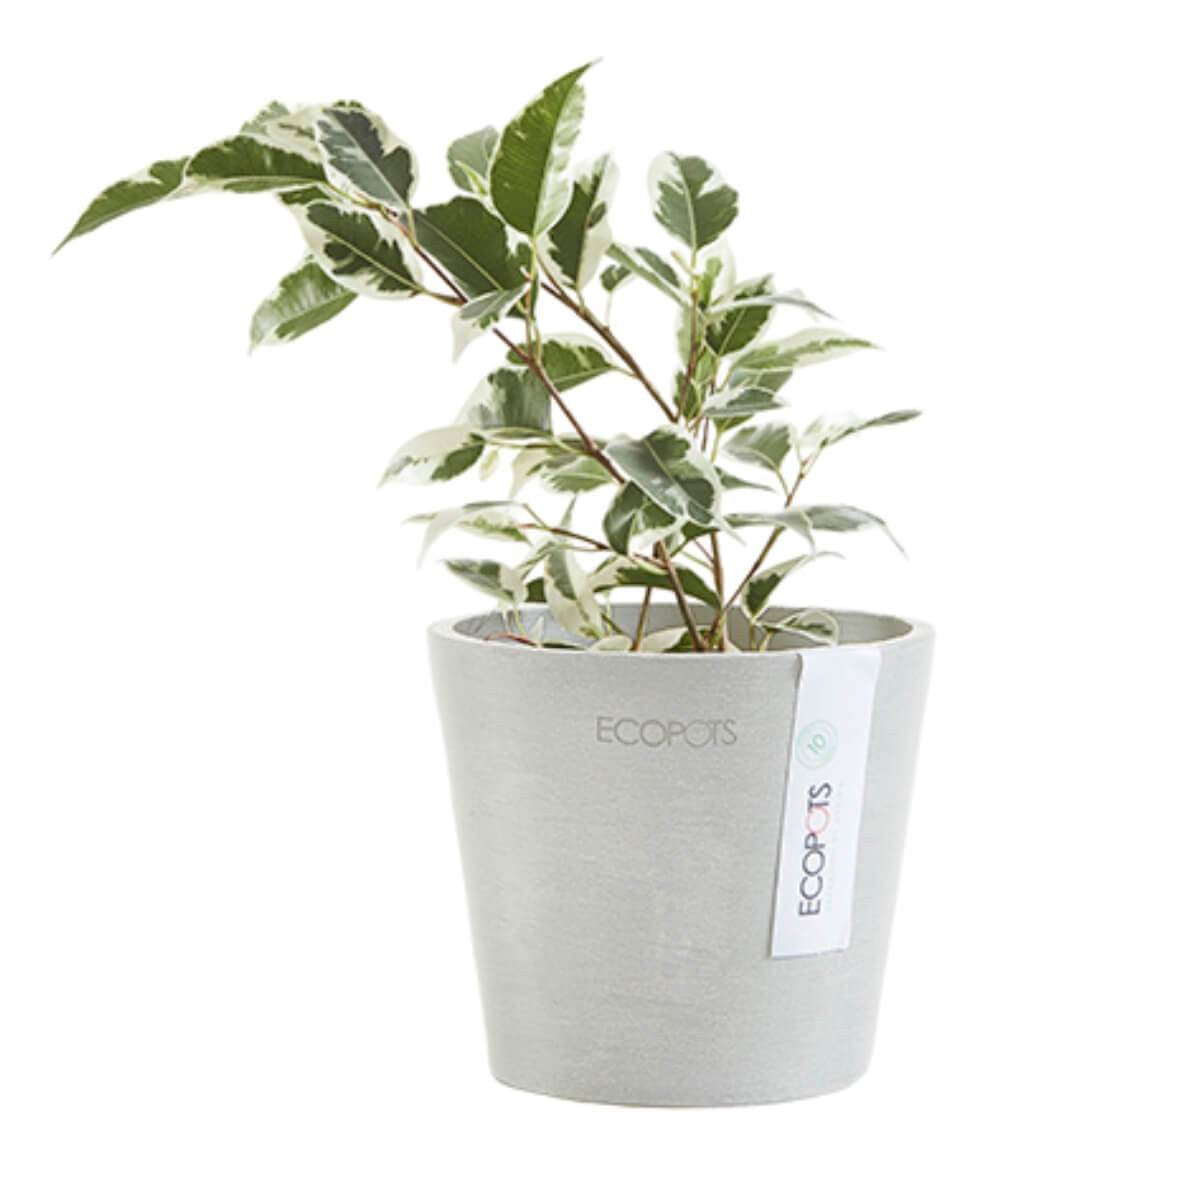 Ecopots Amsterdam mini pot